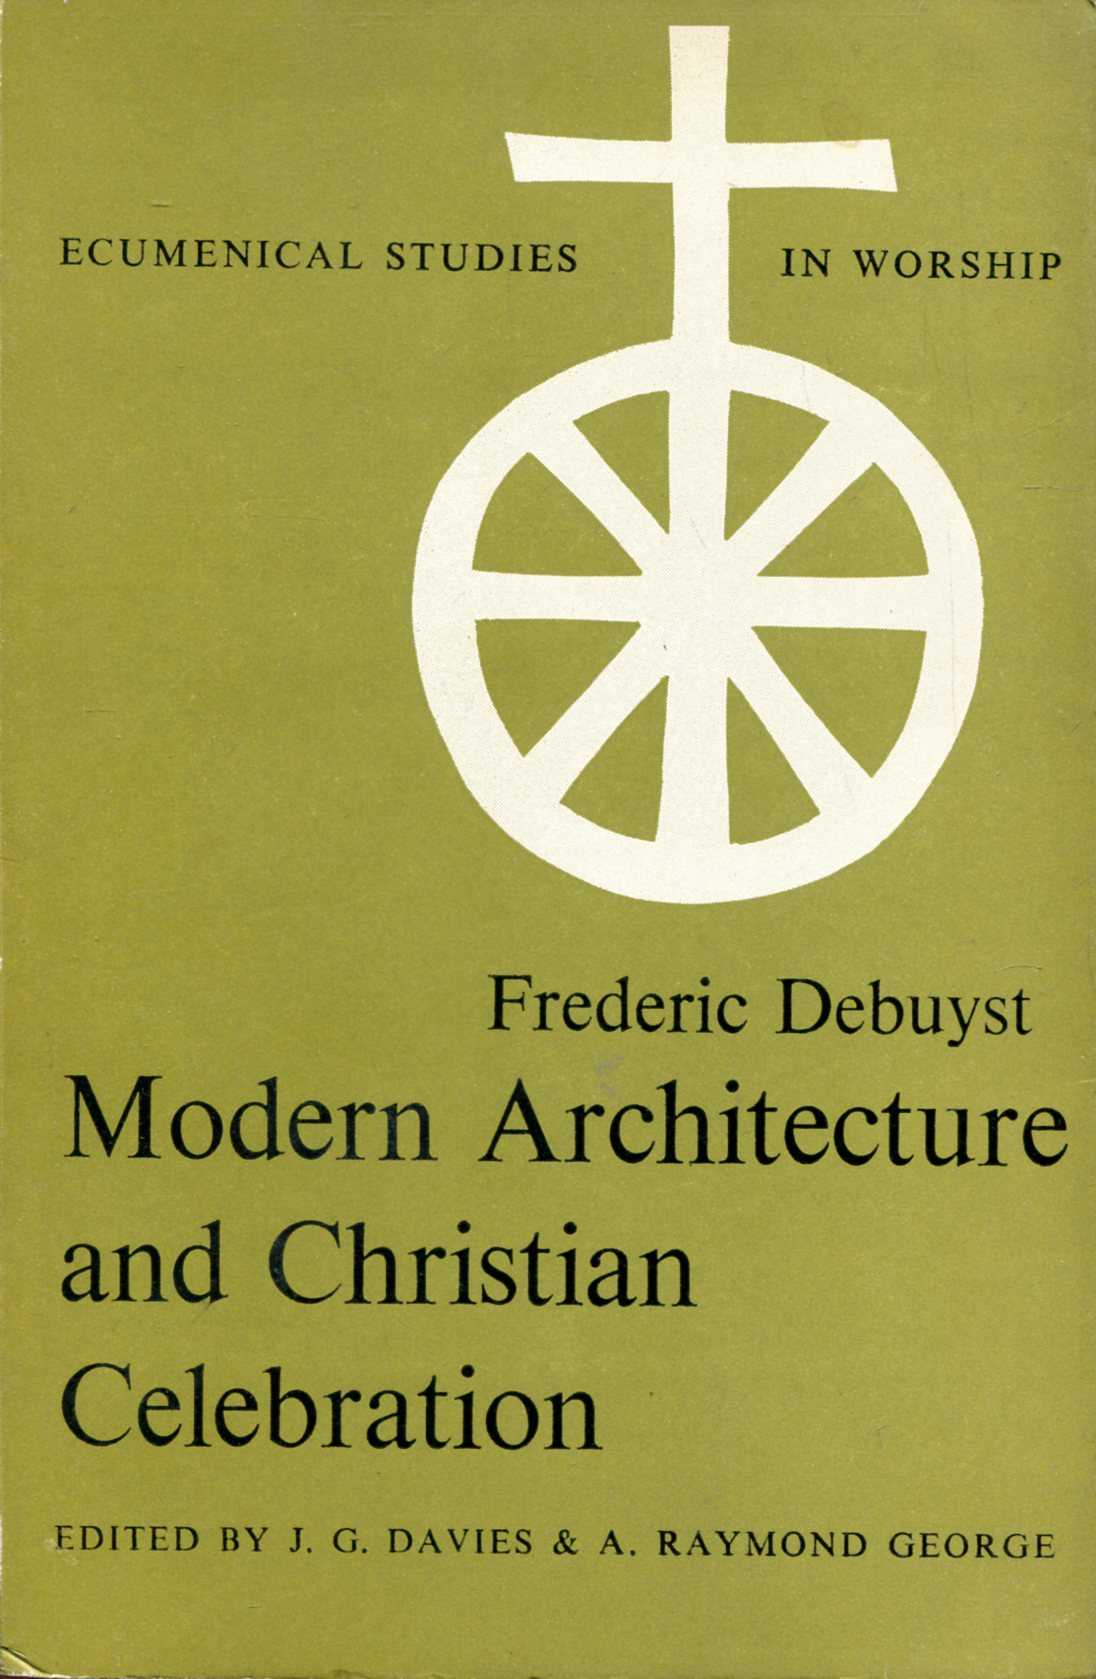 Image for Modern Architecture and Christian Celebration